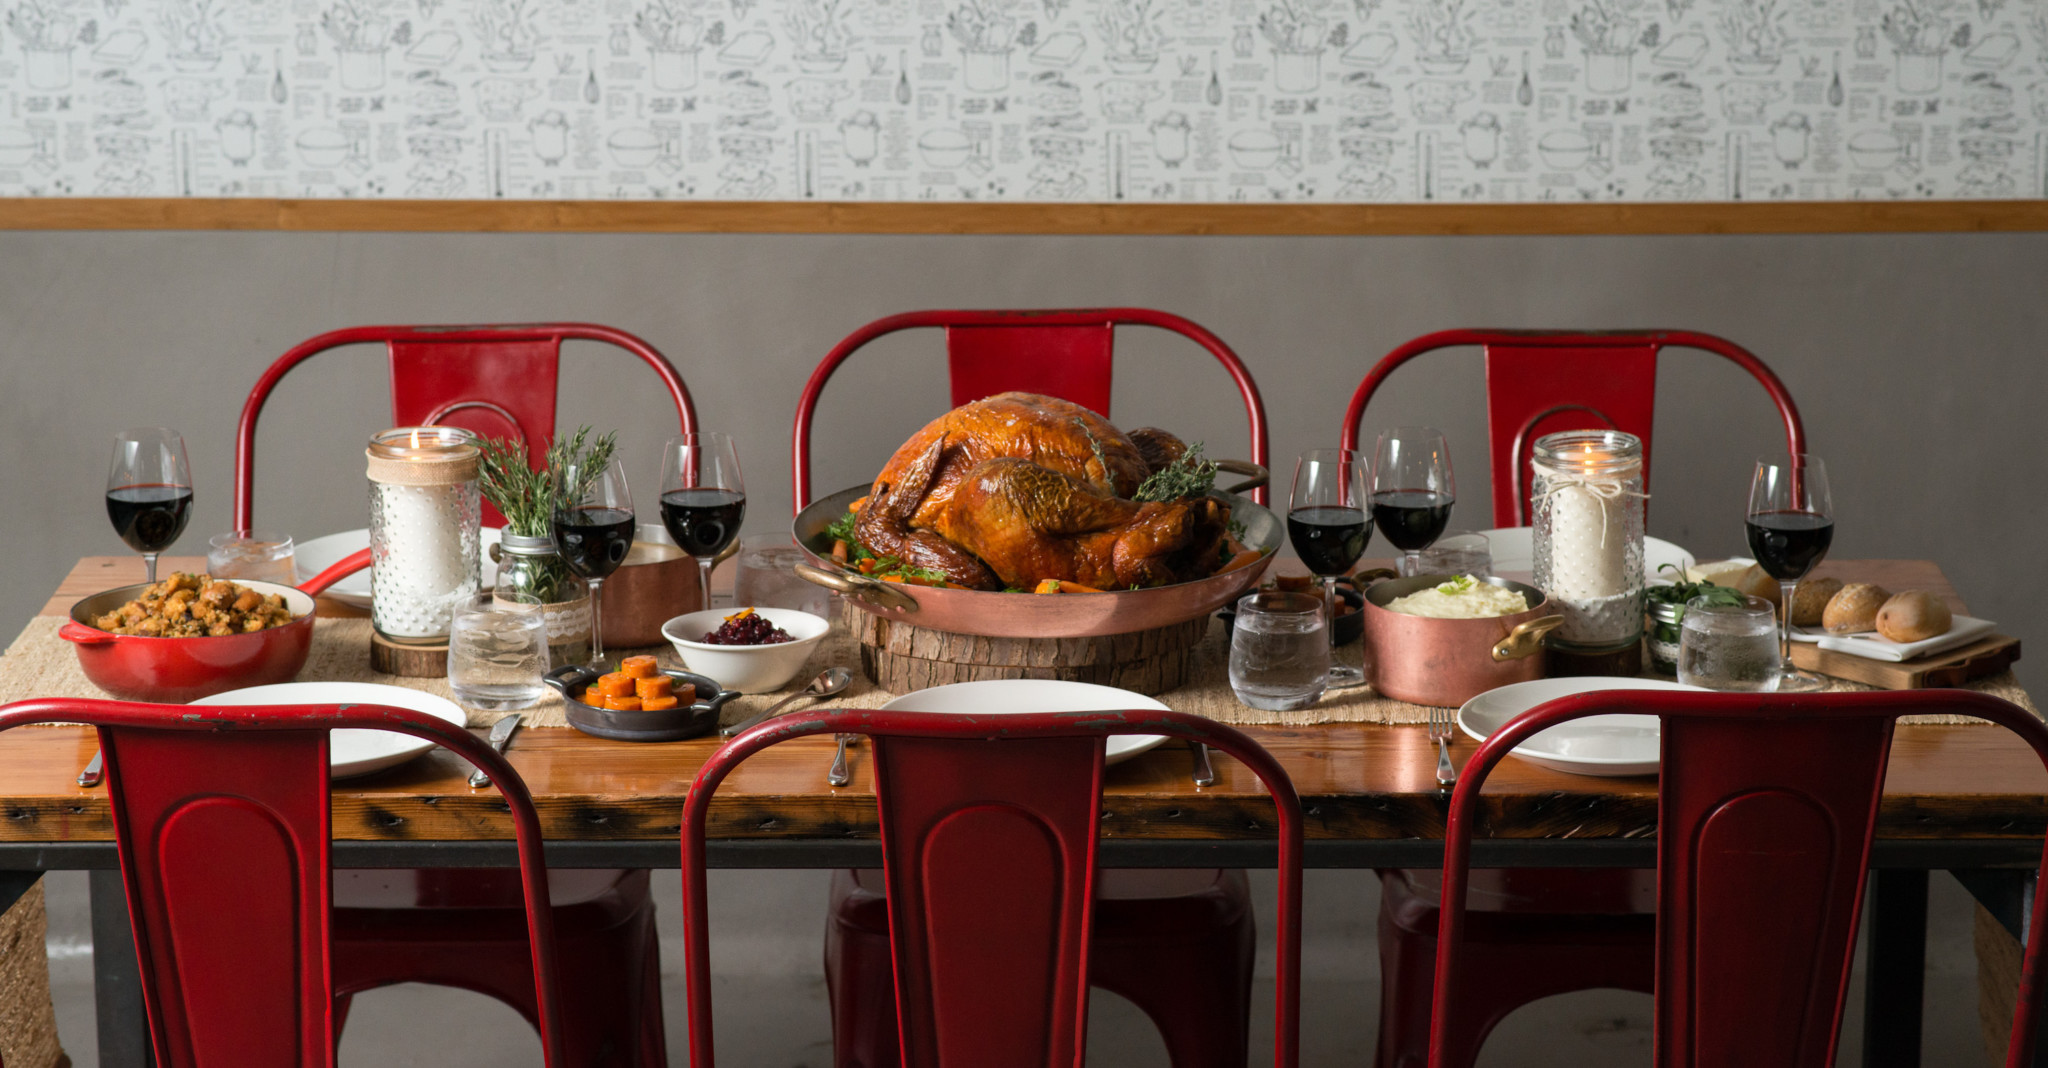 HOME COOKING FOR THE HOLIDAYS: RAILTOWN CATERING ANNOUNCES RETURN OF TURKEY TO-GO PACKAGES, PERFECT FOR HOLIDAY SEASON